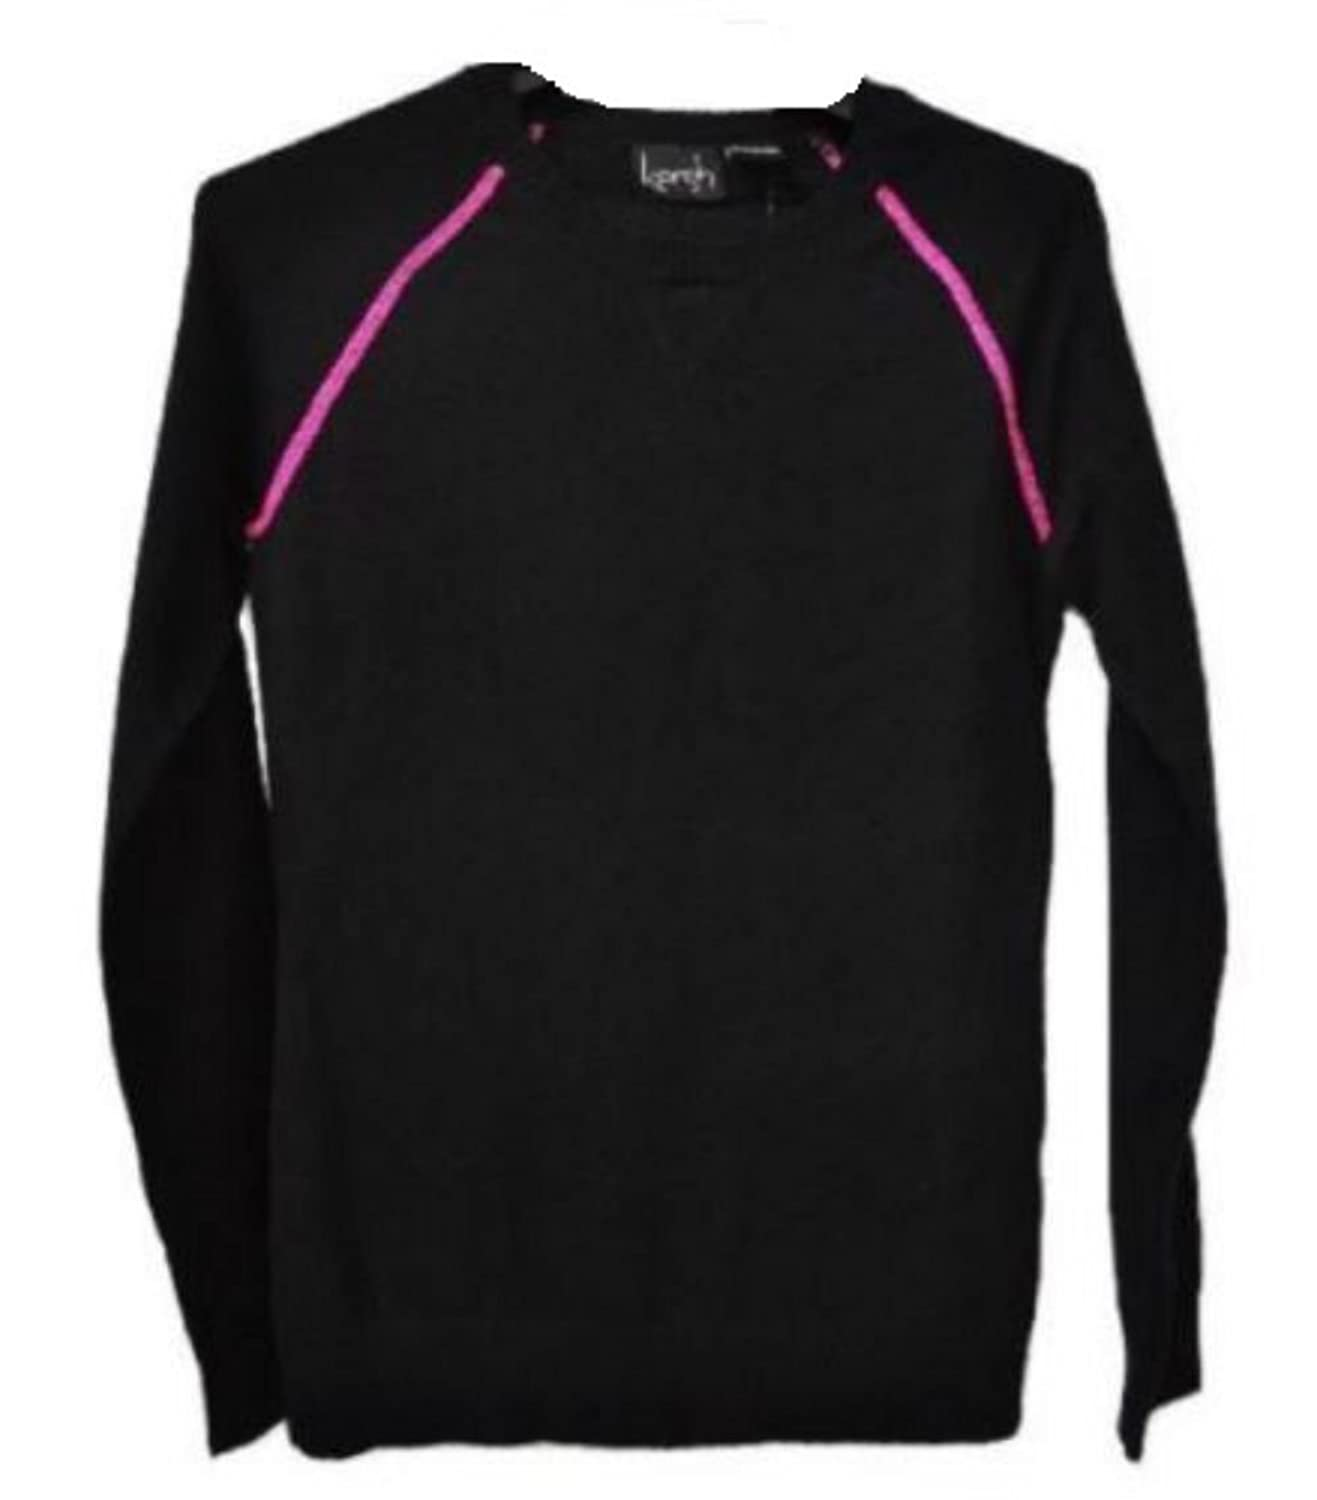 Ladies Kersh Long Sleeve Lightweight Sweater